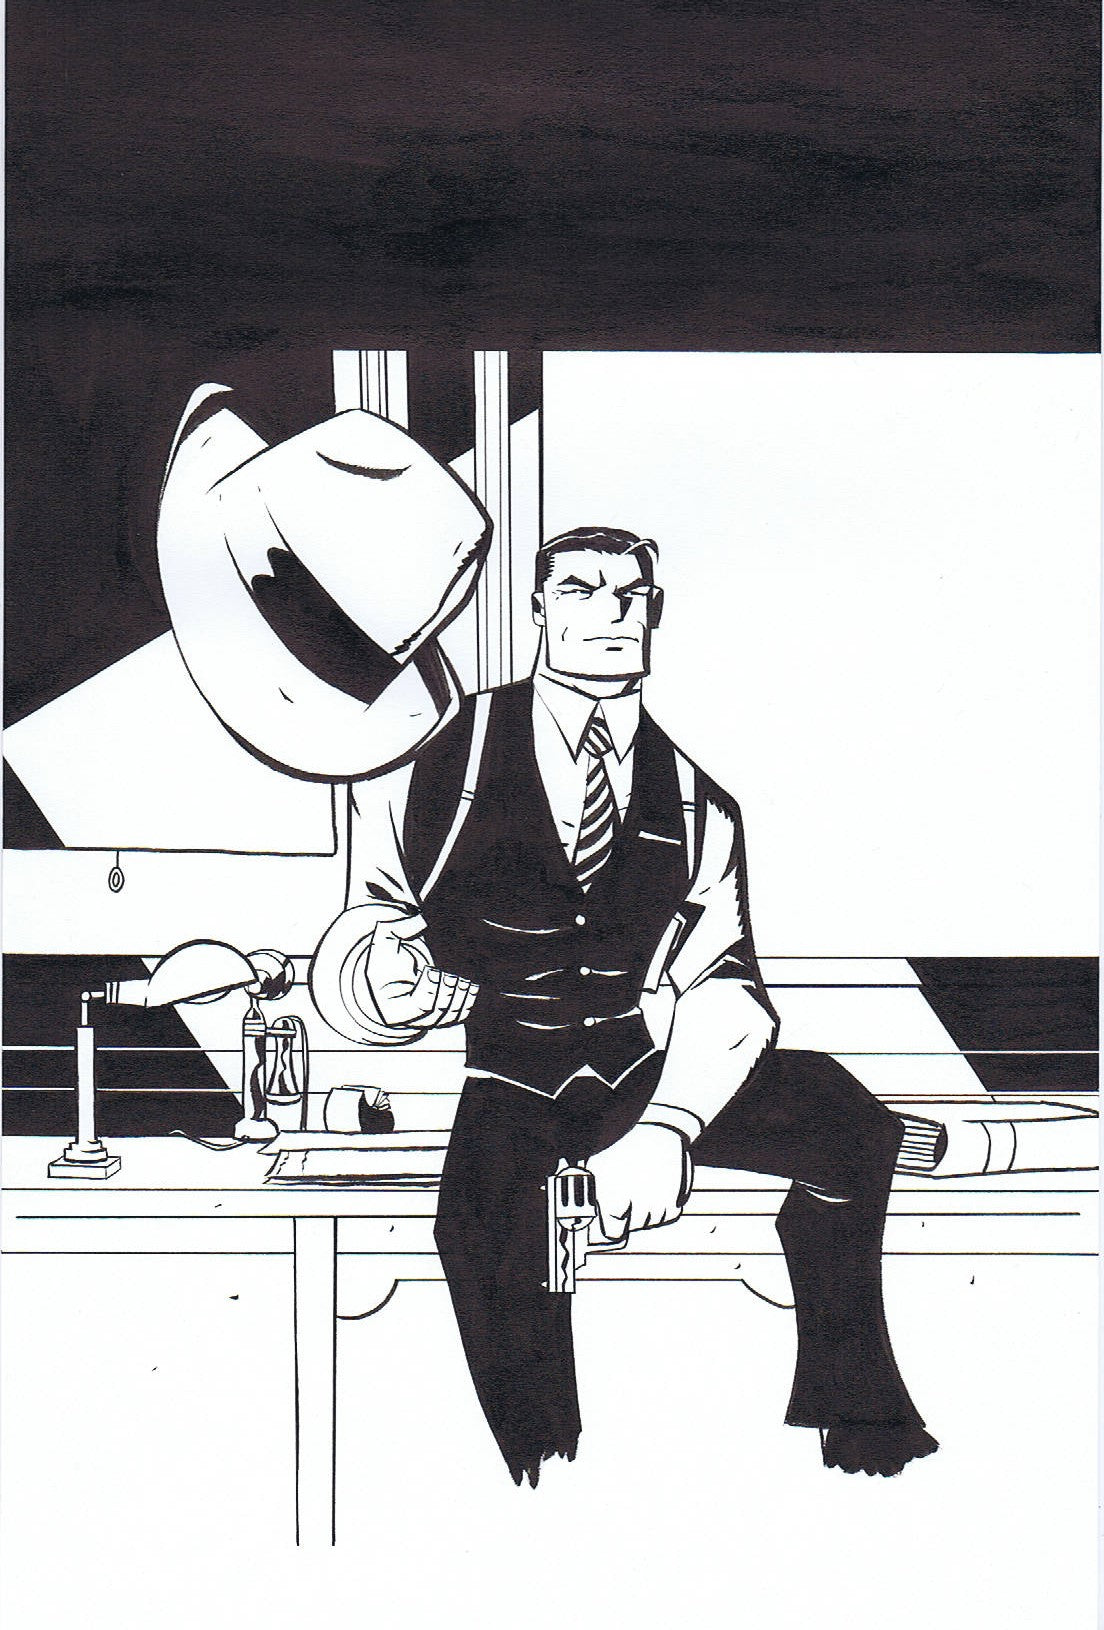 DICK TRACY: FOREVER #1 - COVER ART + WARM UP ART